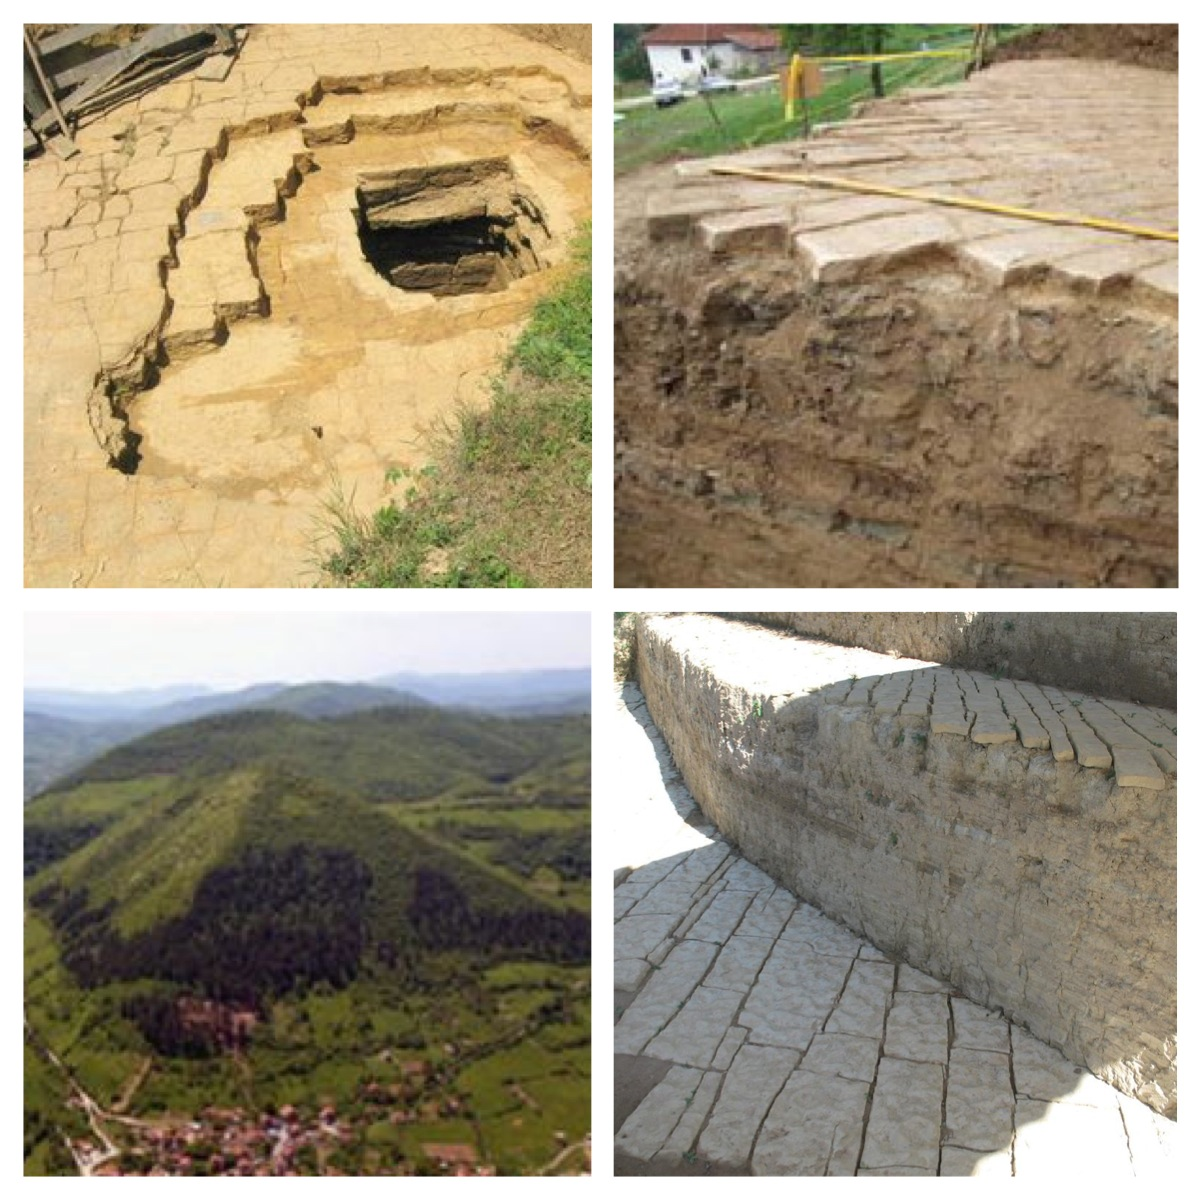 bosnian pyramids carbon dating